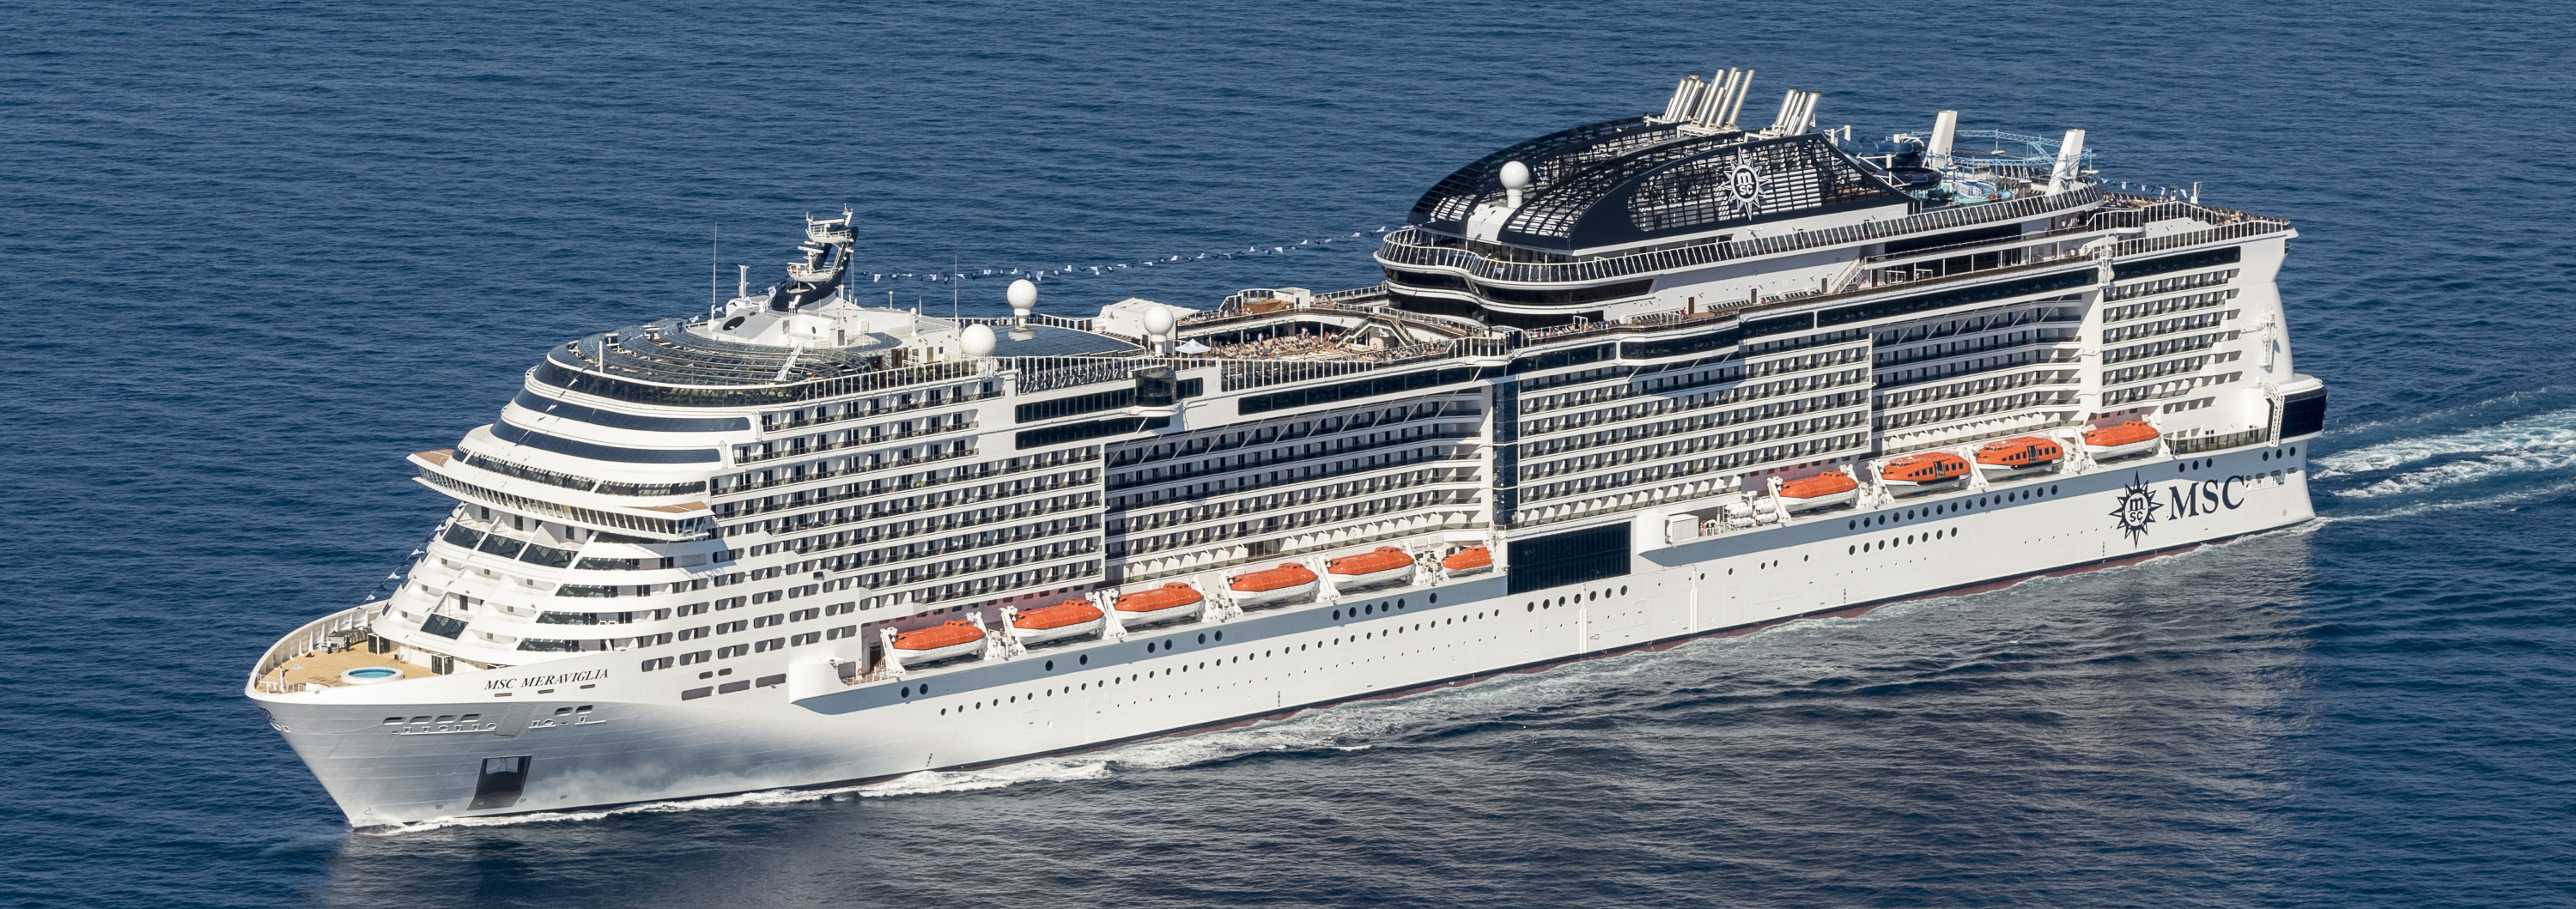 Summer Mediterranean Cruise  on MSC Meraviglia